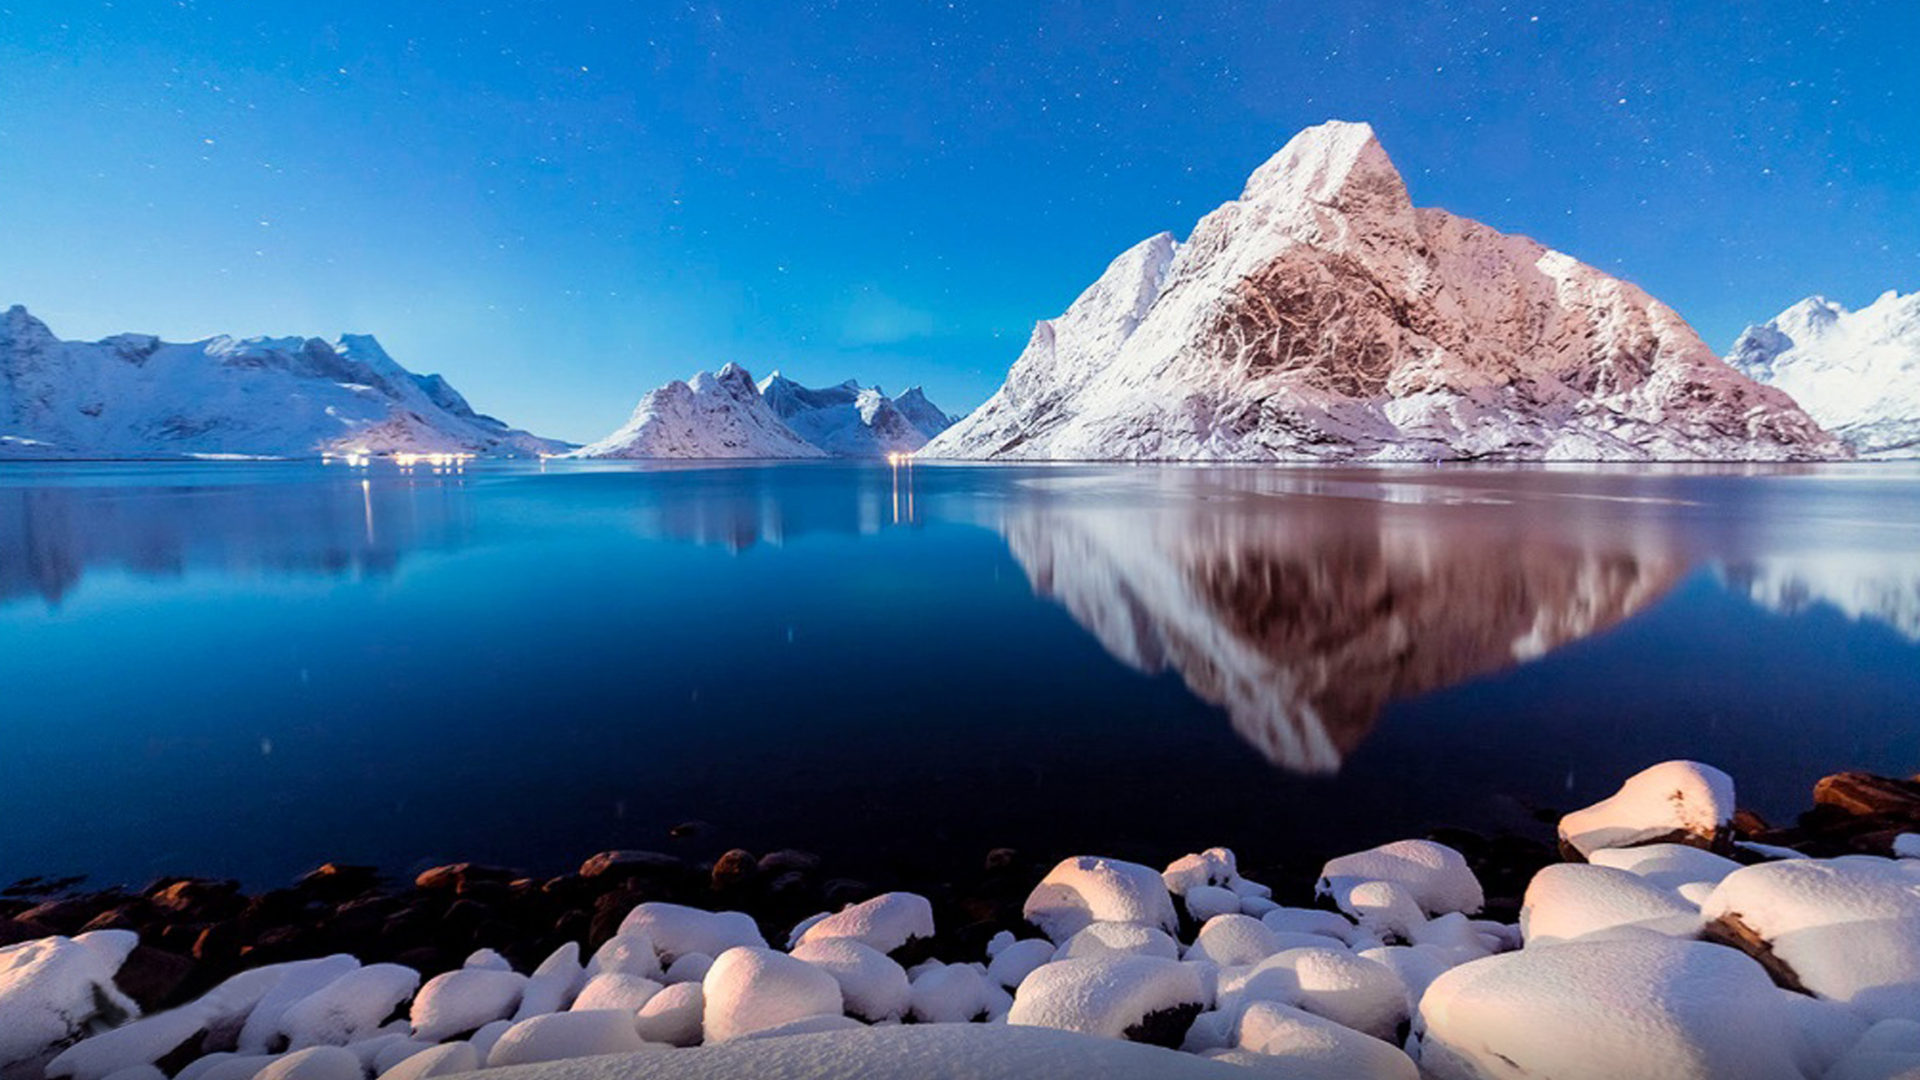 Fall Winter Background Wallpaper Winter Peaceful Lake Shore Stones Snow Mountains Blue